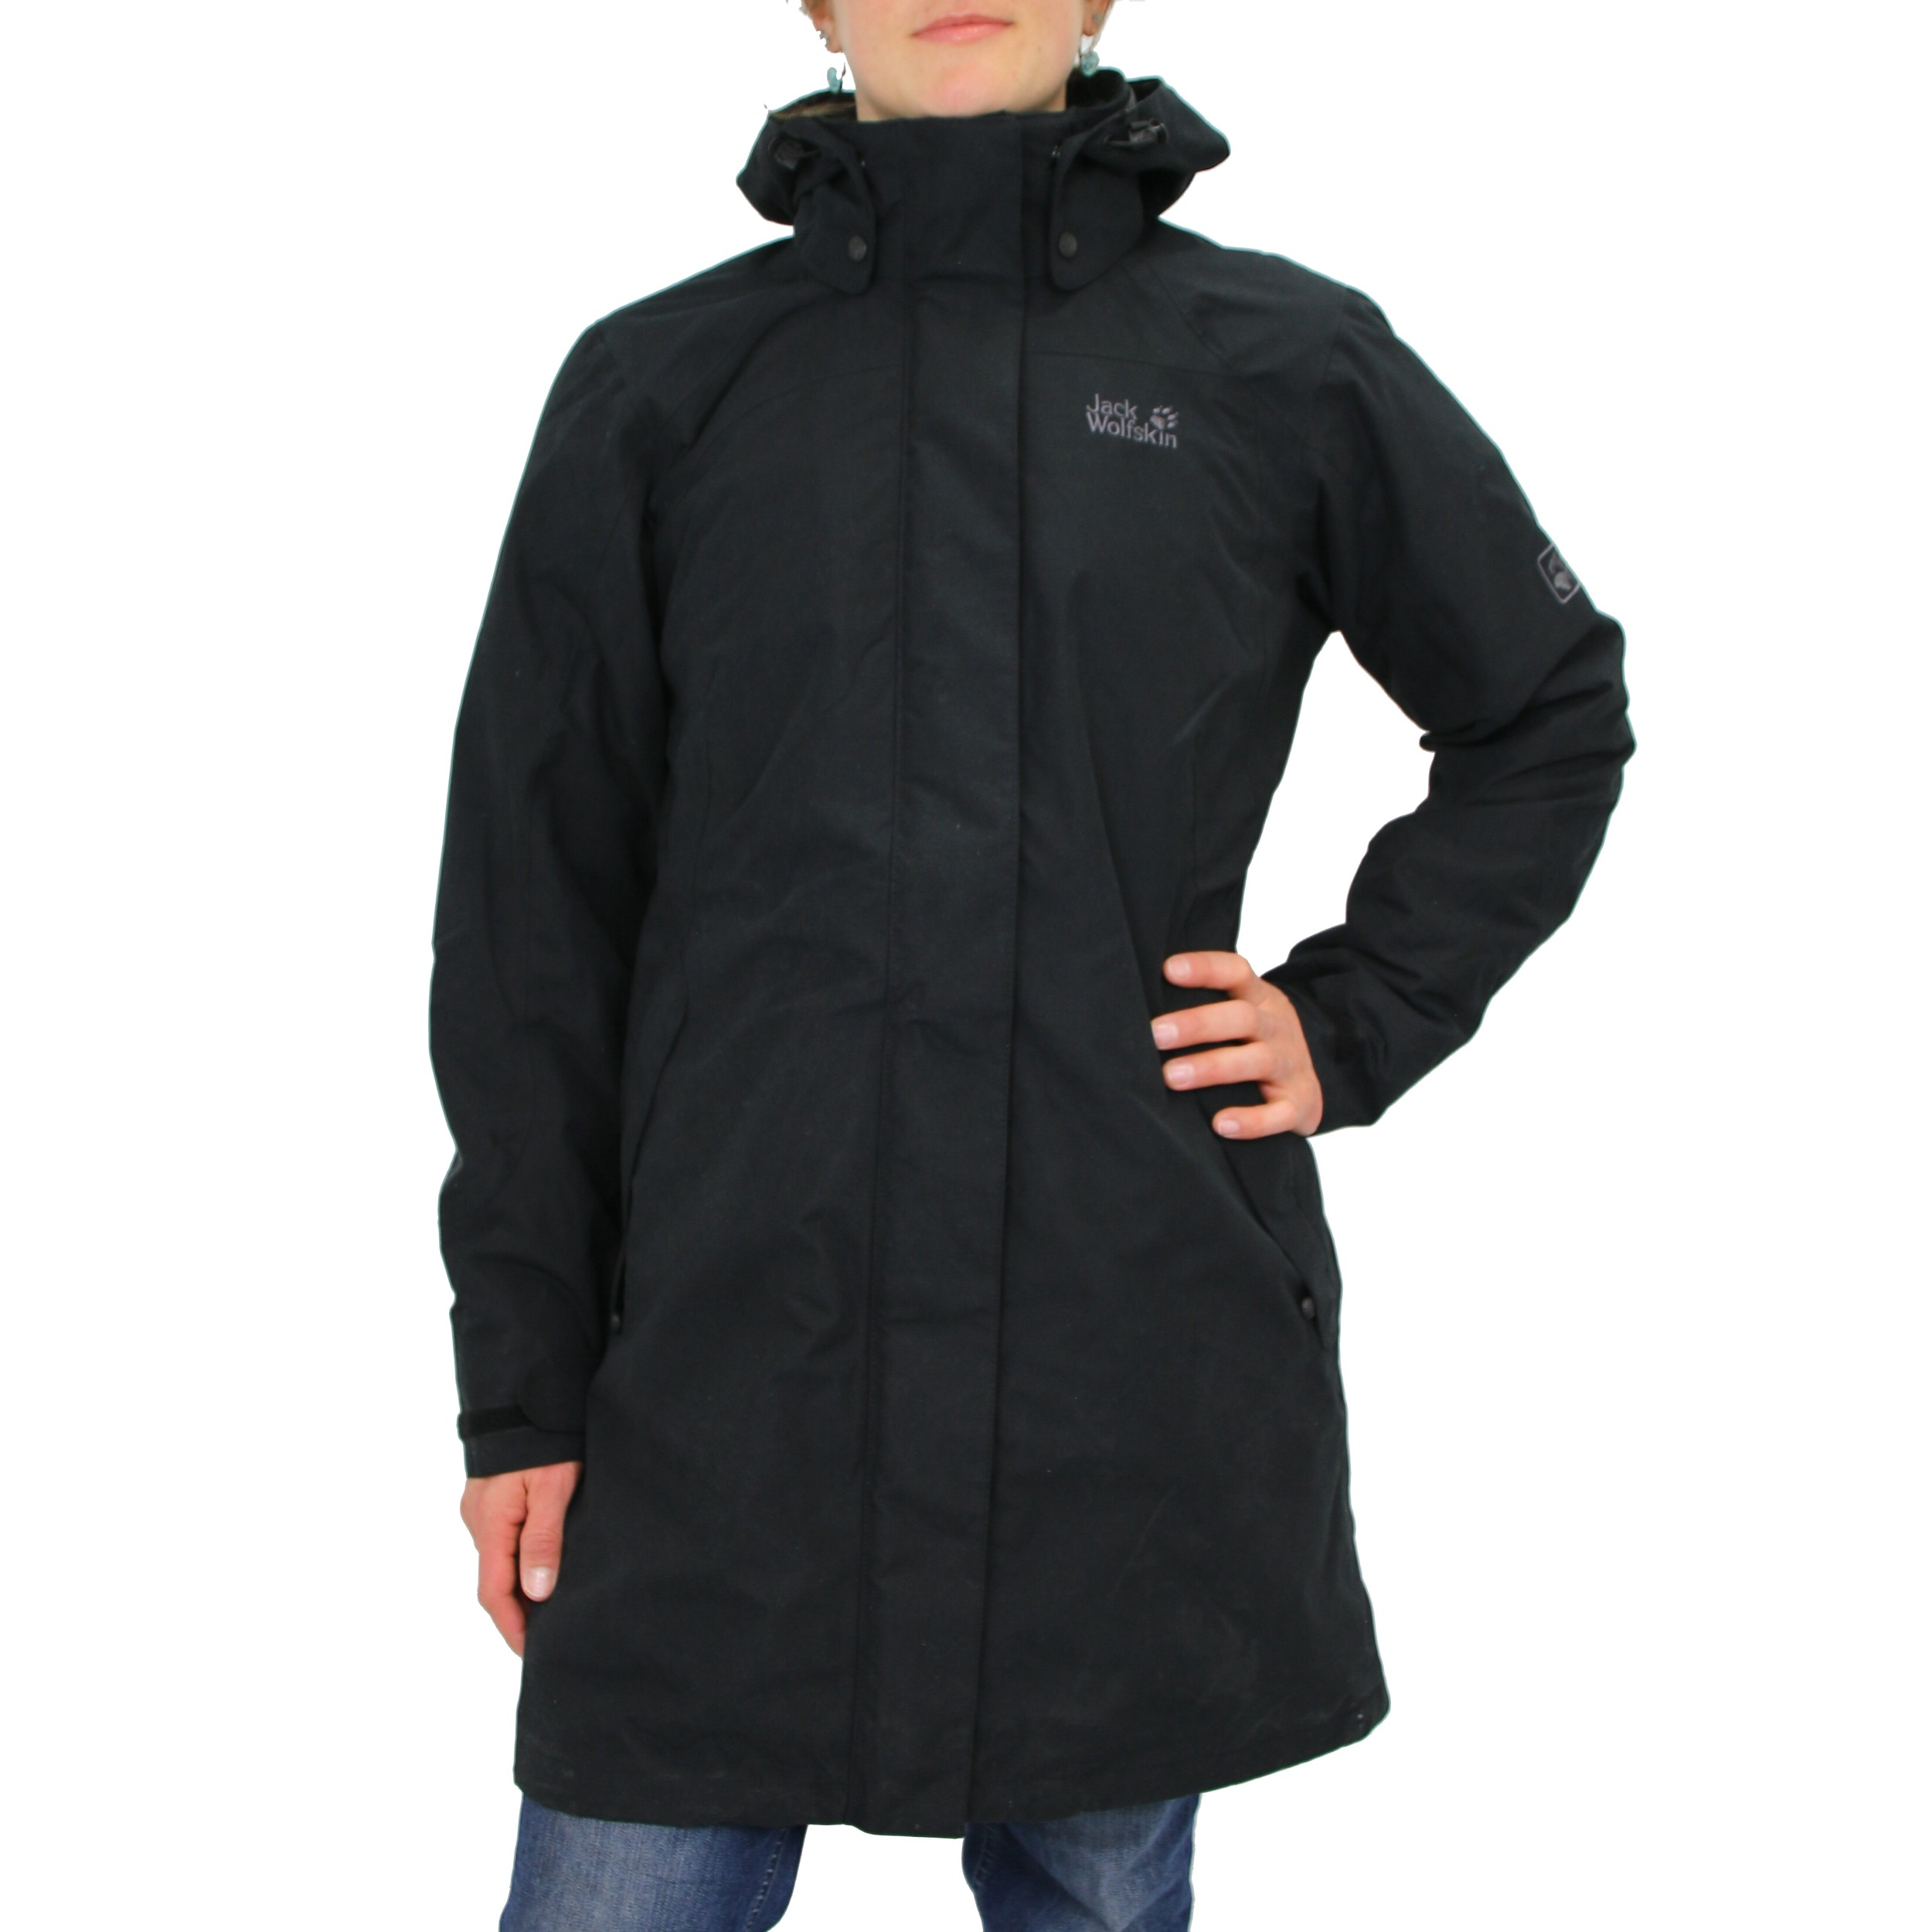 jack wolfskin ottawa coat women 39 s jacket winter coat black. Black Bedroom Furniture Sets. Home Design Ideas